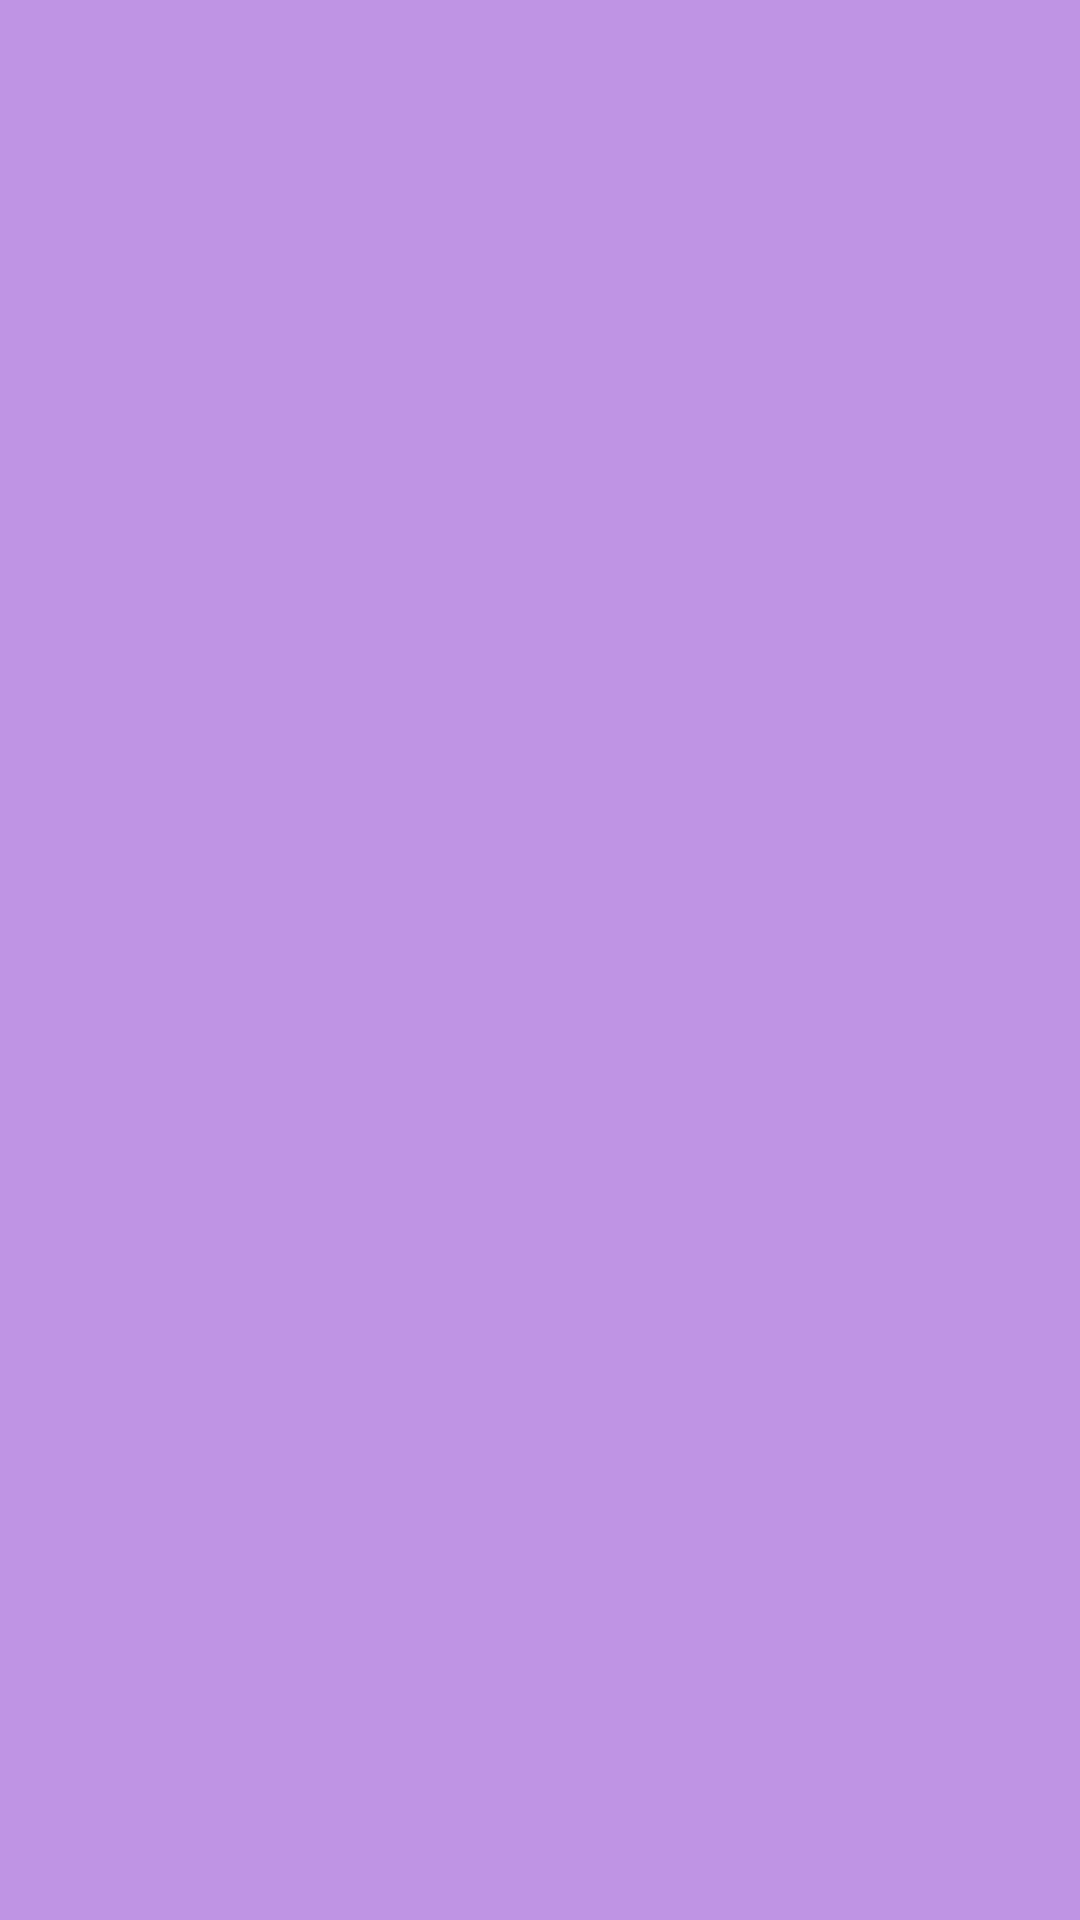 1080x1920 Bright Lavender Solid Color Background